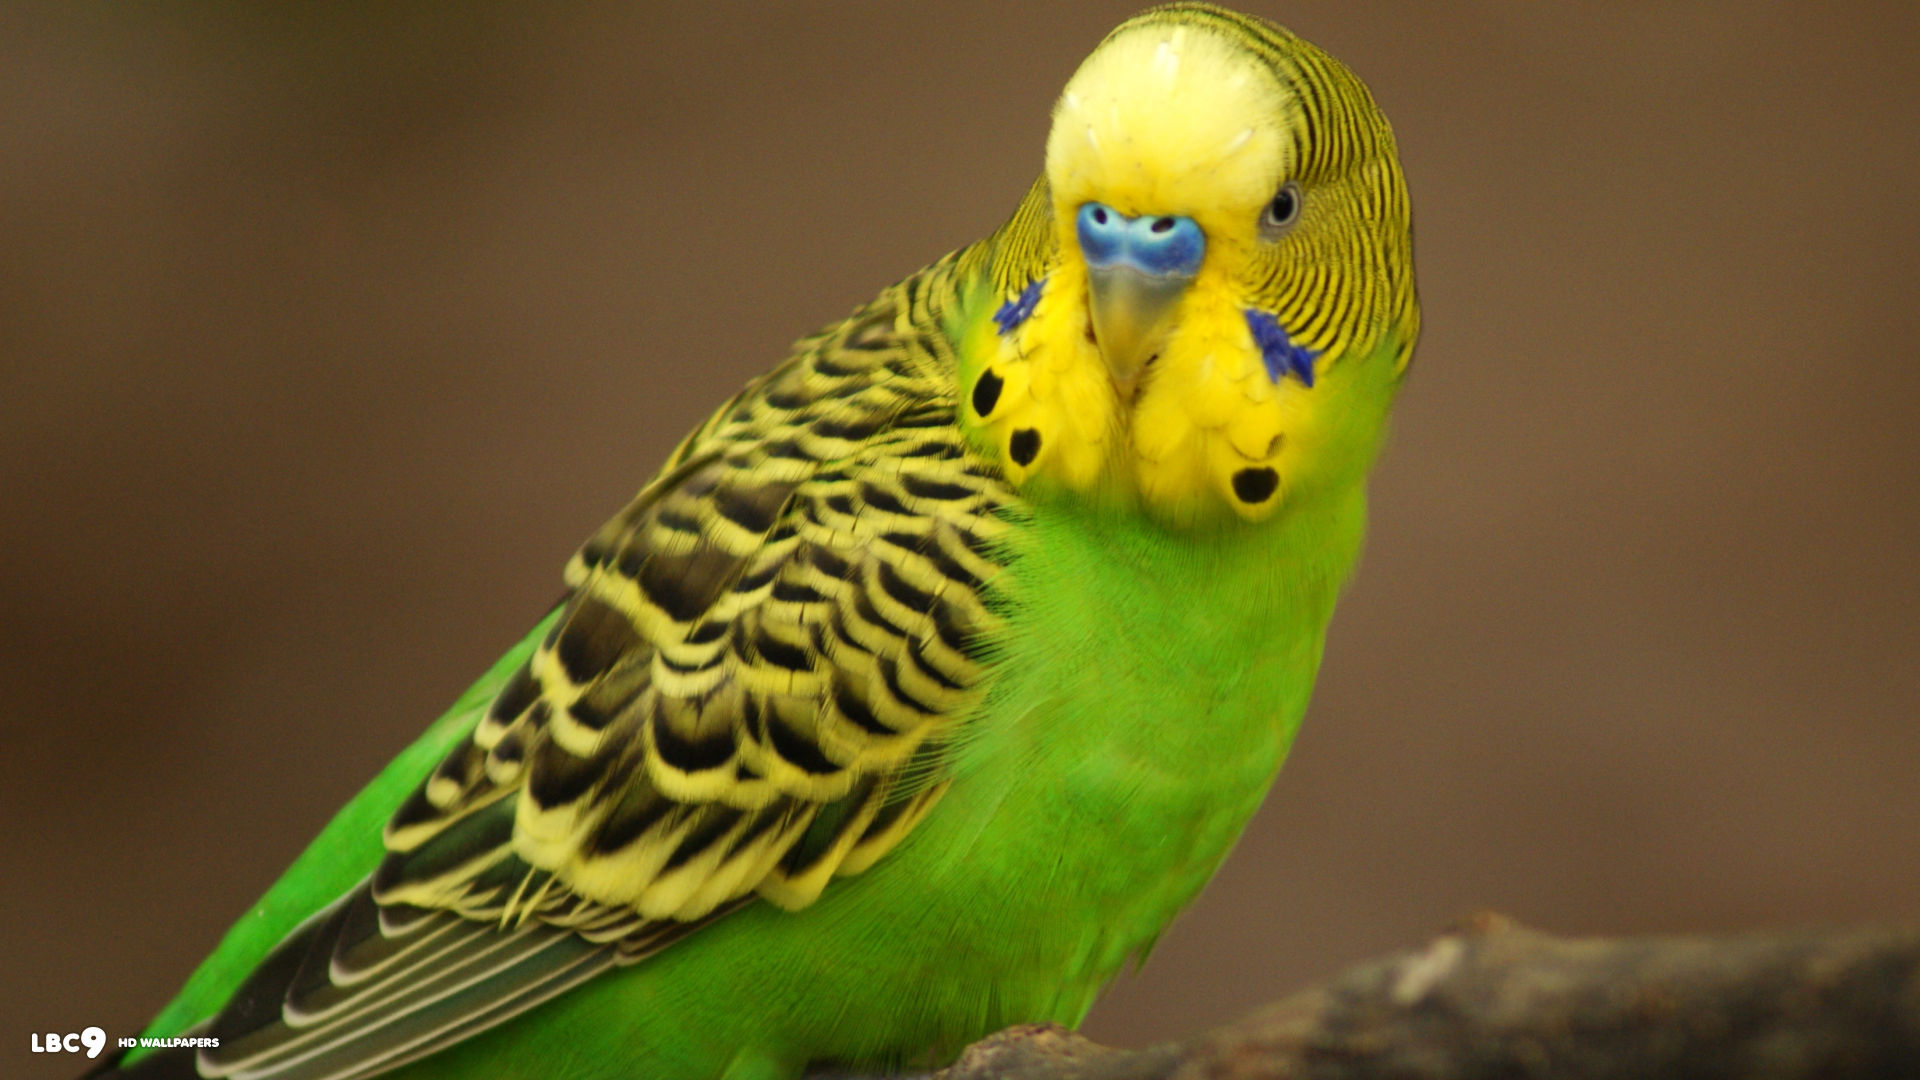 Cute Parakeets Wallpapers  Android Apps on Google Play 1920x1080